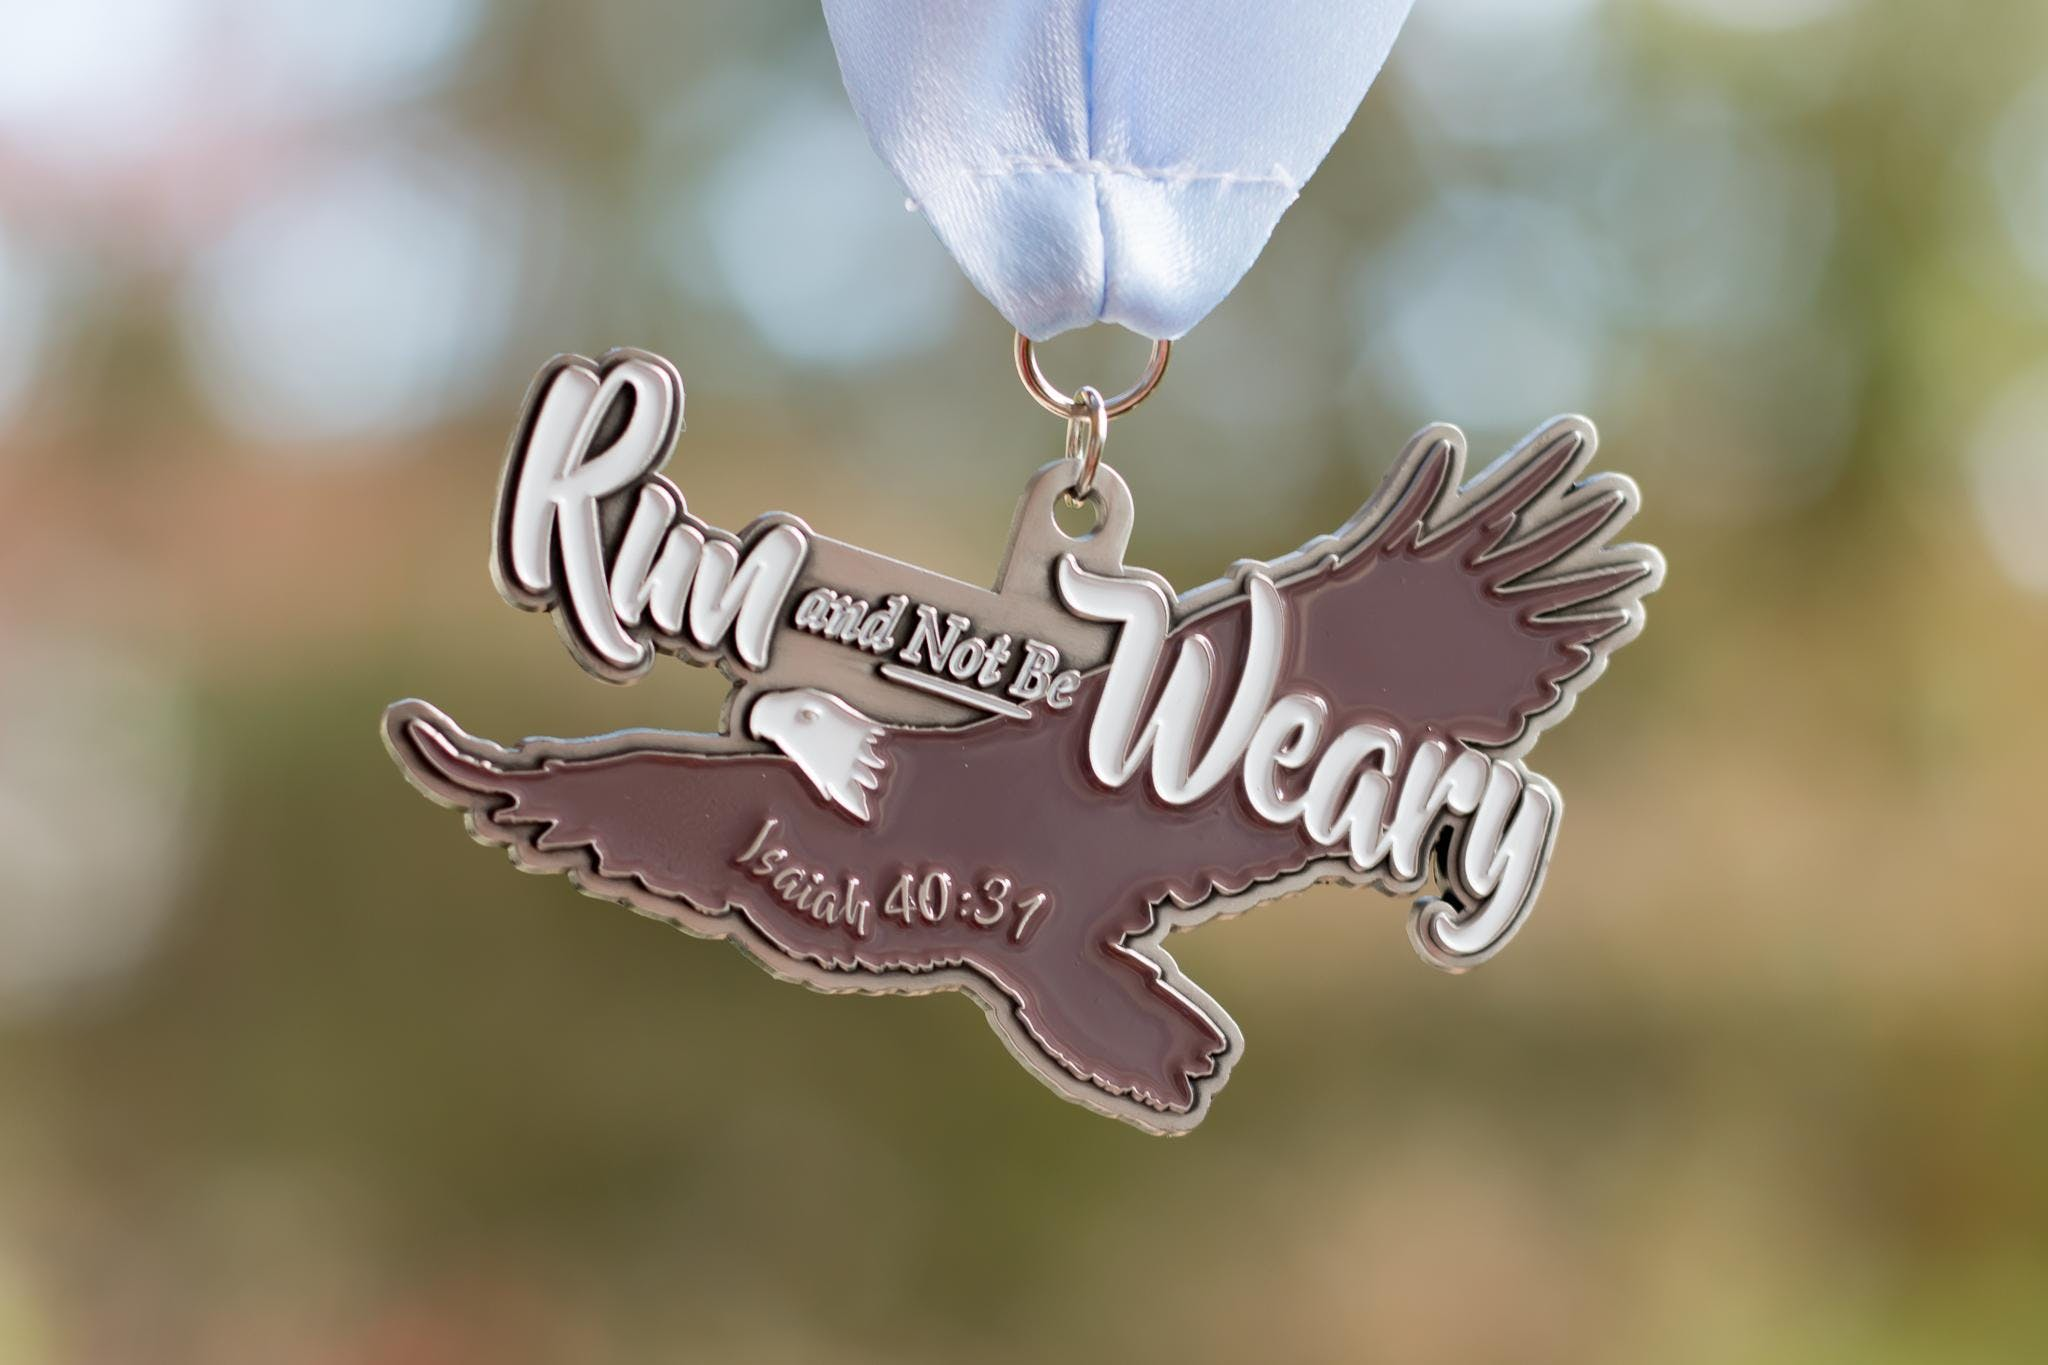 2019 The Run and Not Be Weary 1 Mile, 5K, 10K, 13.1, 26.2 - Memphis